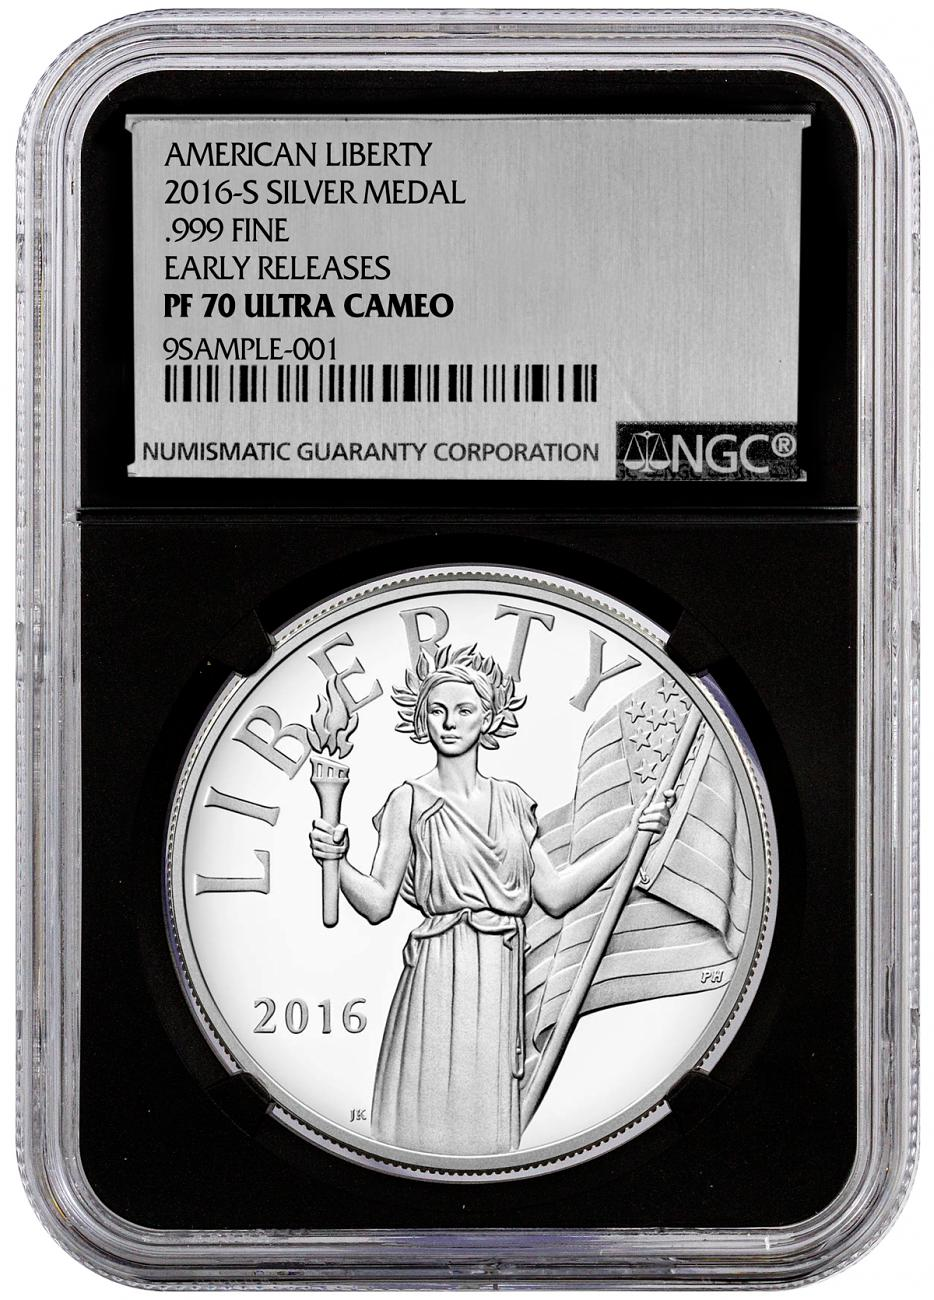 2016-S 1 oz. Proof Silver American Liberty Medal - NGC PF70 UC Early Releases (Silver Foil Label with Black Core)